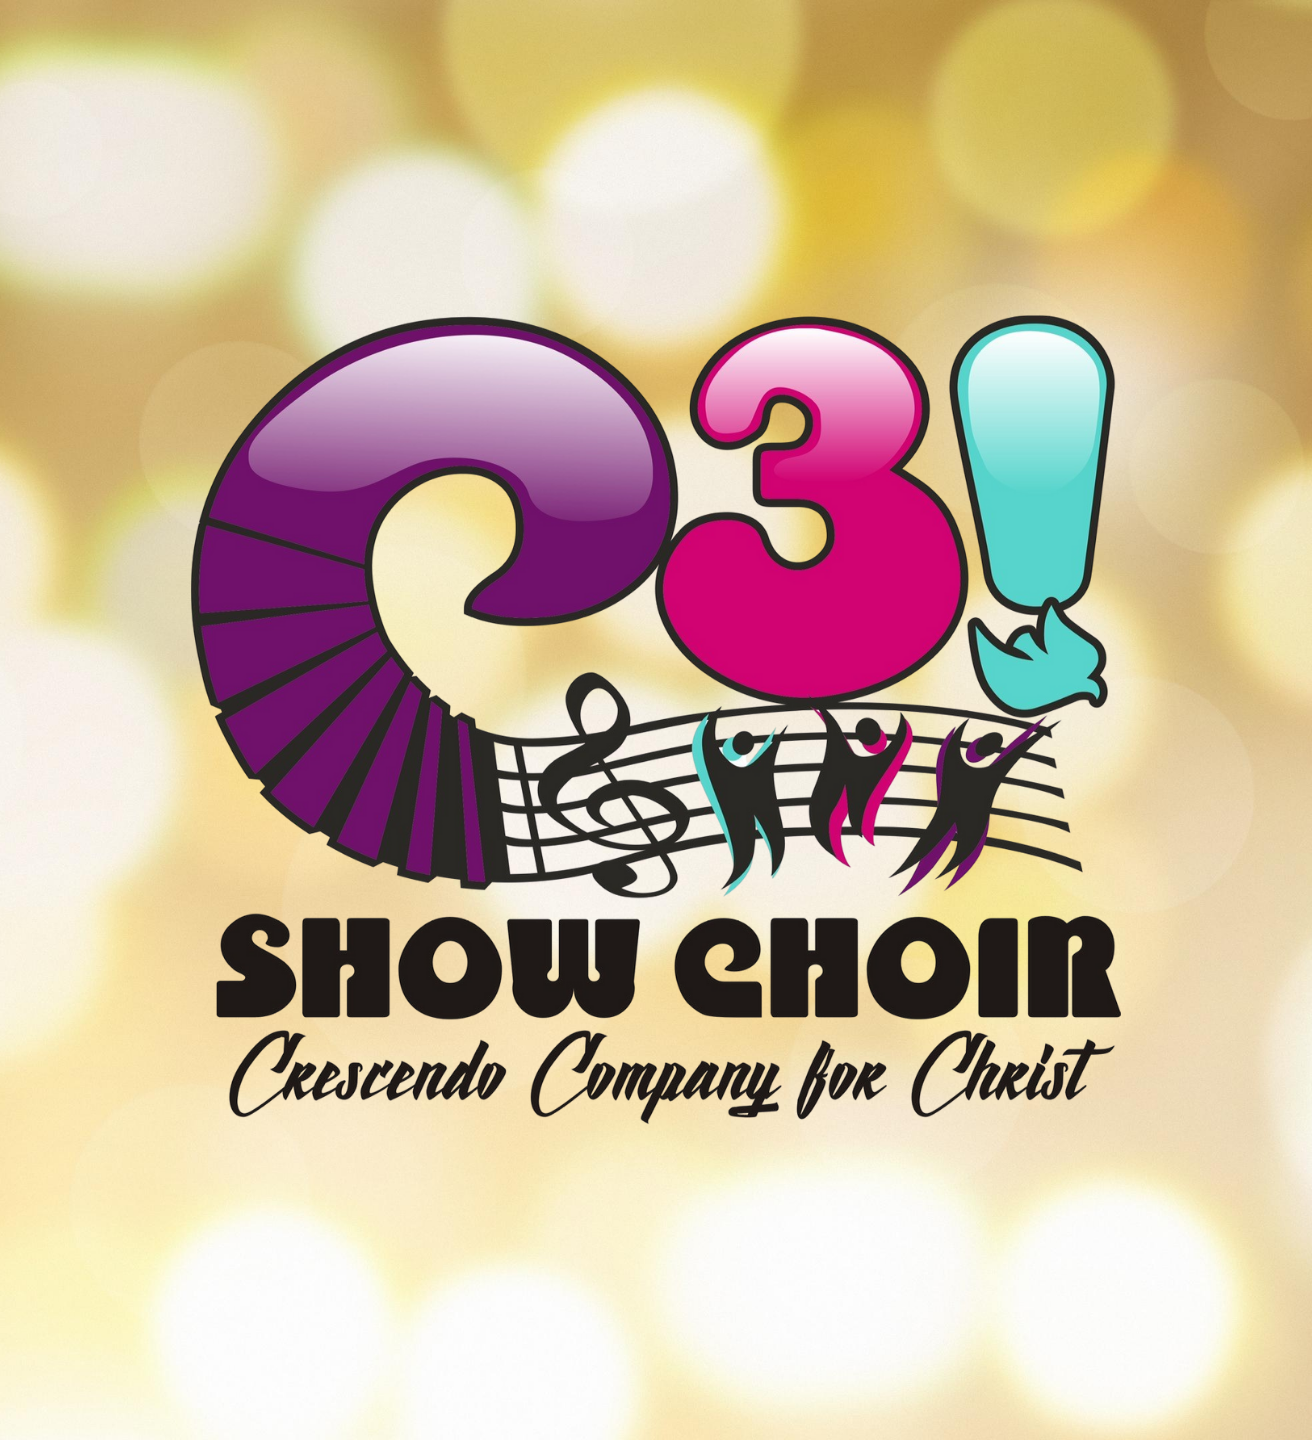 Show Choir - The Crescendo Company for Christ - Arts in Action